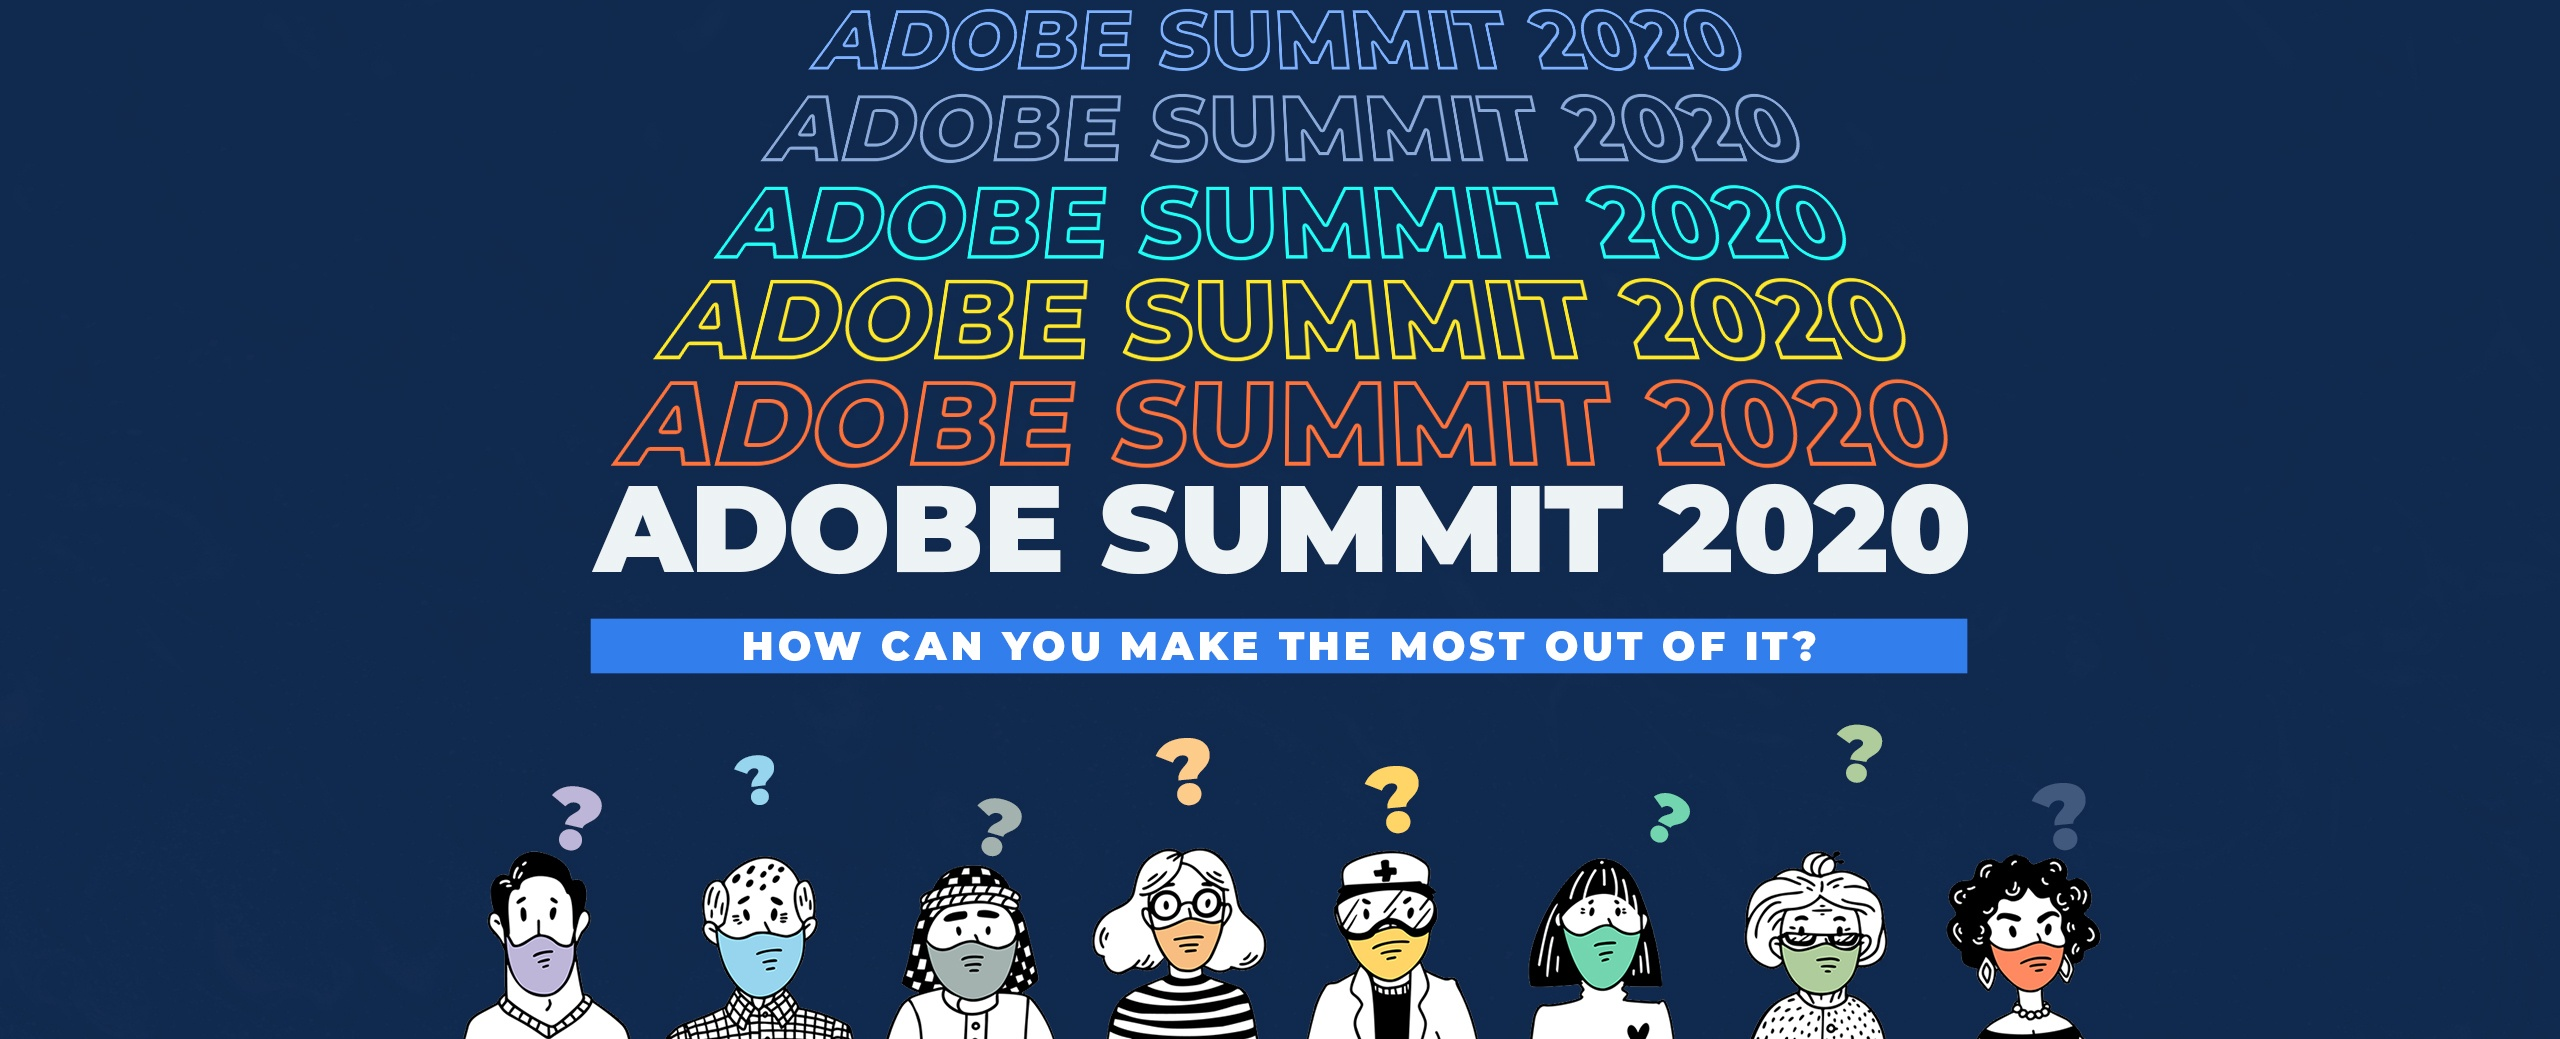 Adobe Summit 2020 - How can you Make the Most out of it copy